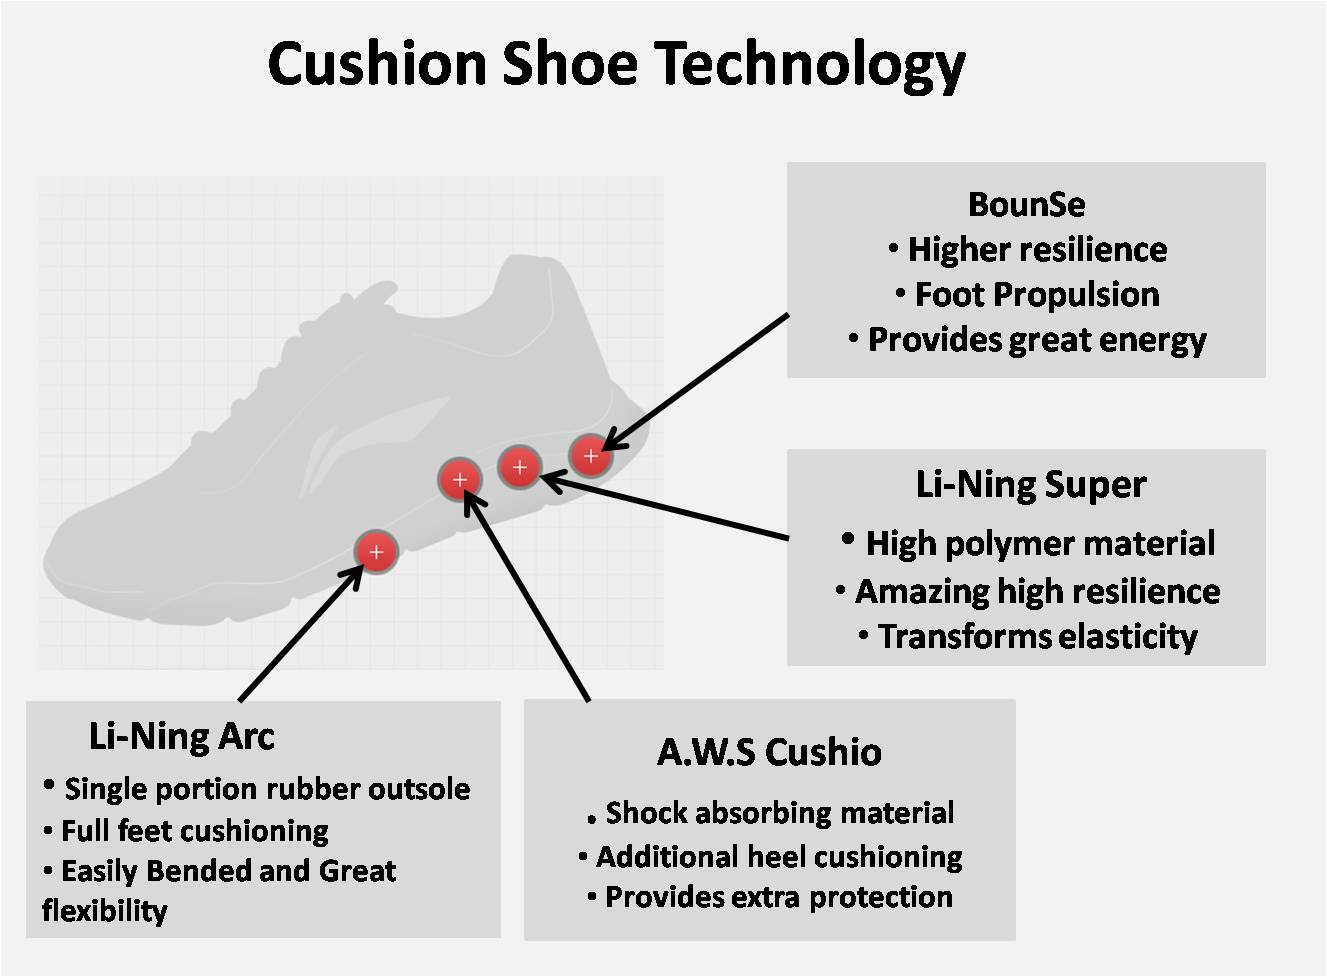 cushion shoe technology